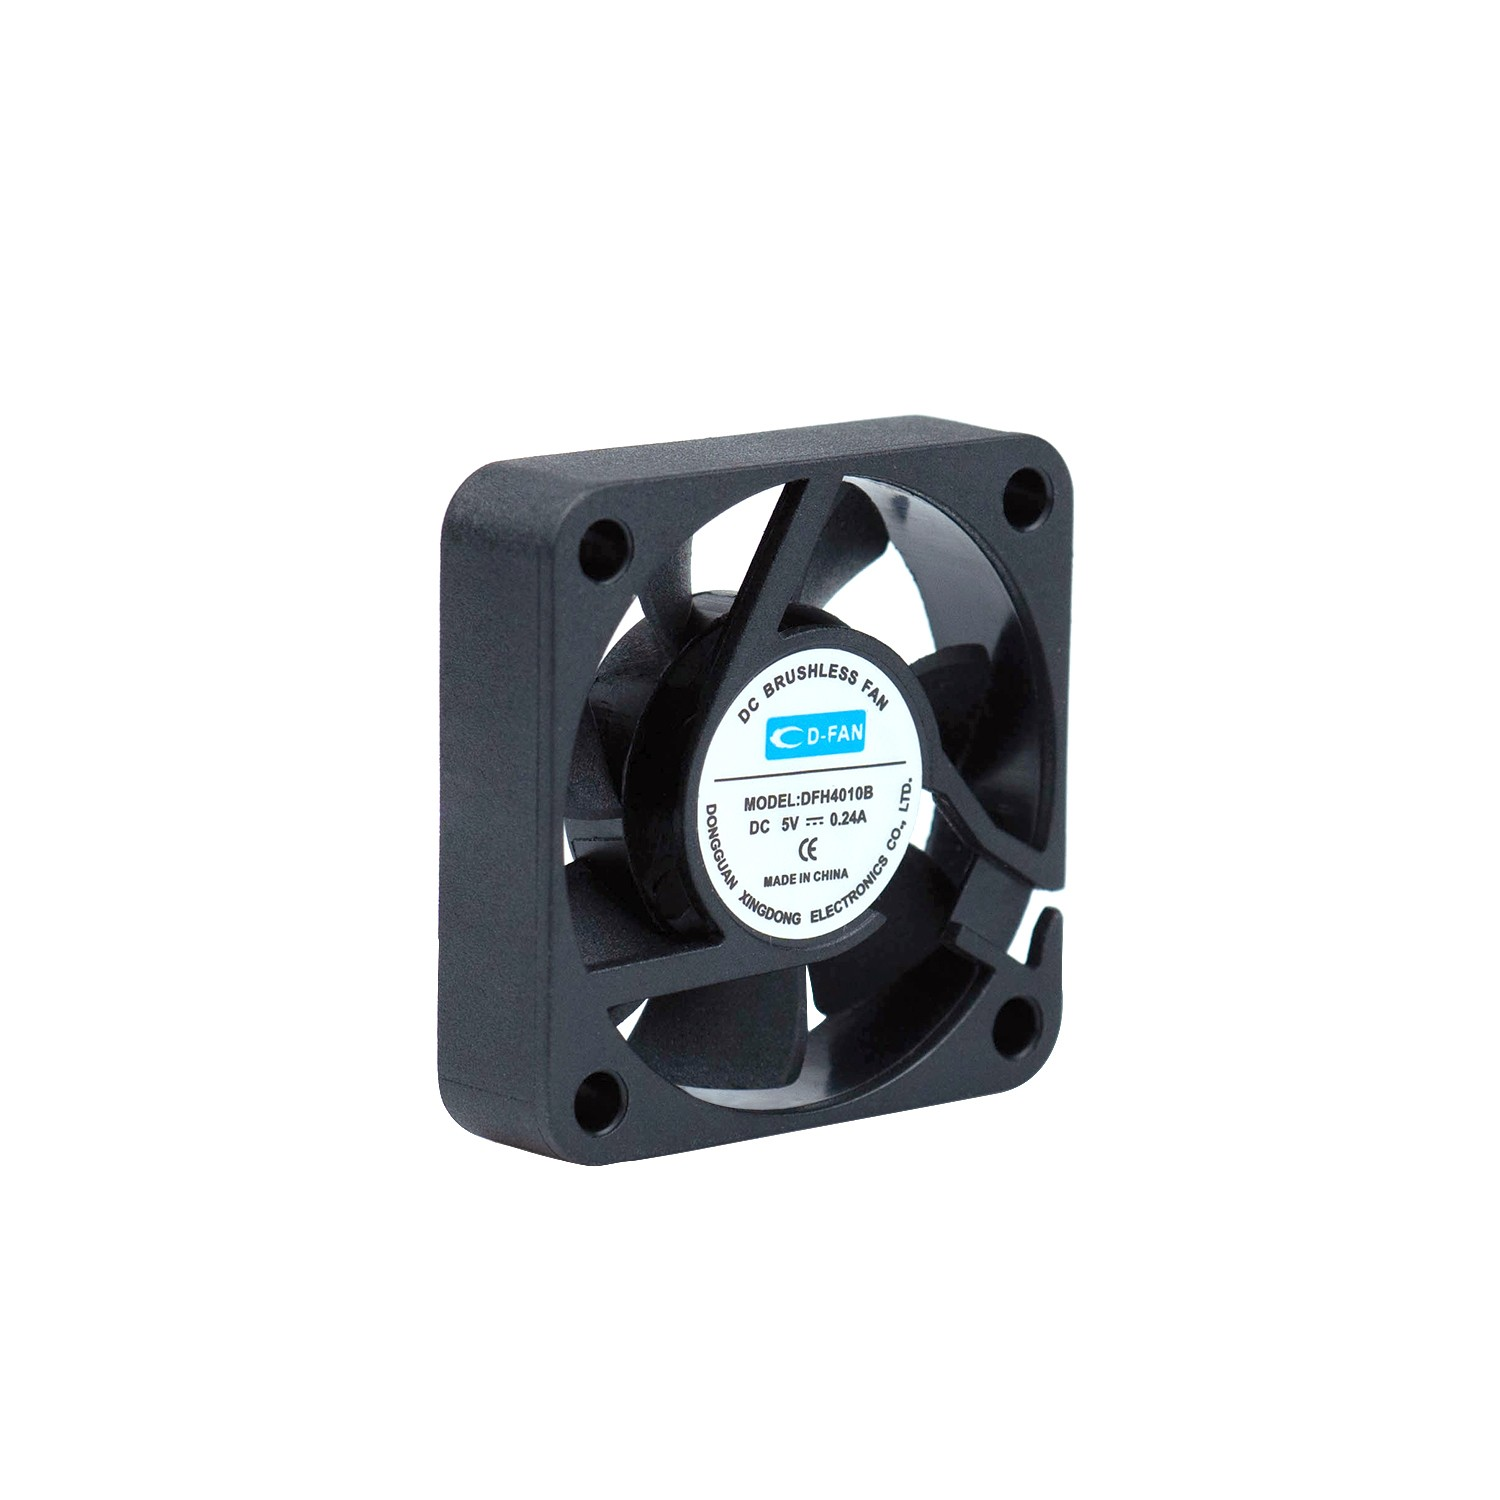 Axial Cooling Fan 40X40x10mm For Computer Manufacturer 12 Volt Fan Manufacturers, Axial Cooling Fan 40X40x10mm For Computer Manufacturer 12 Volt Fan Factory, Supply Axial Cooling Fan 40X40x10mm For Computer Manufacturer 12 Volt Fan